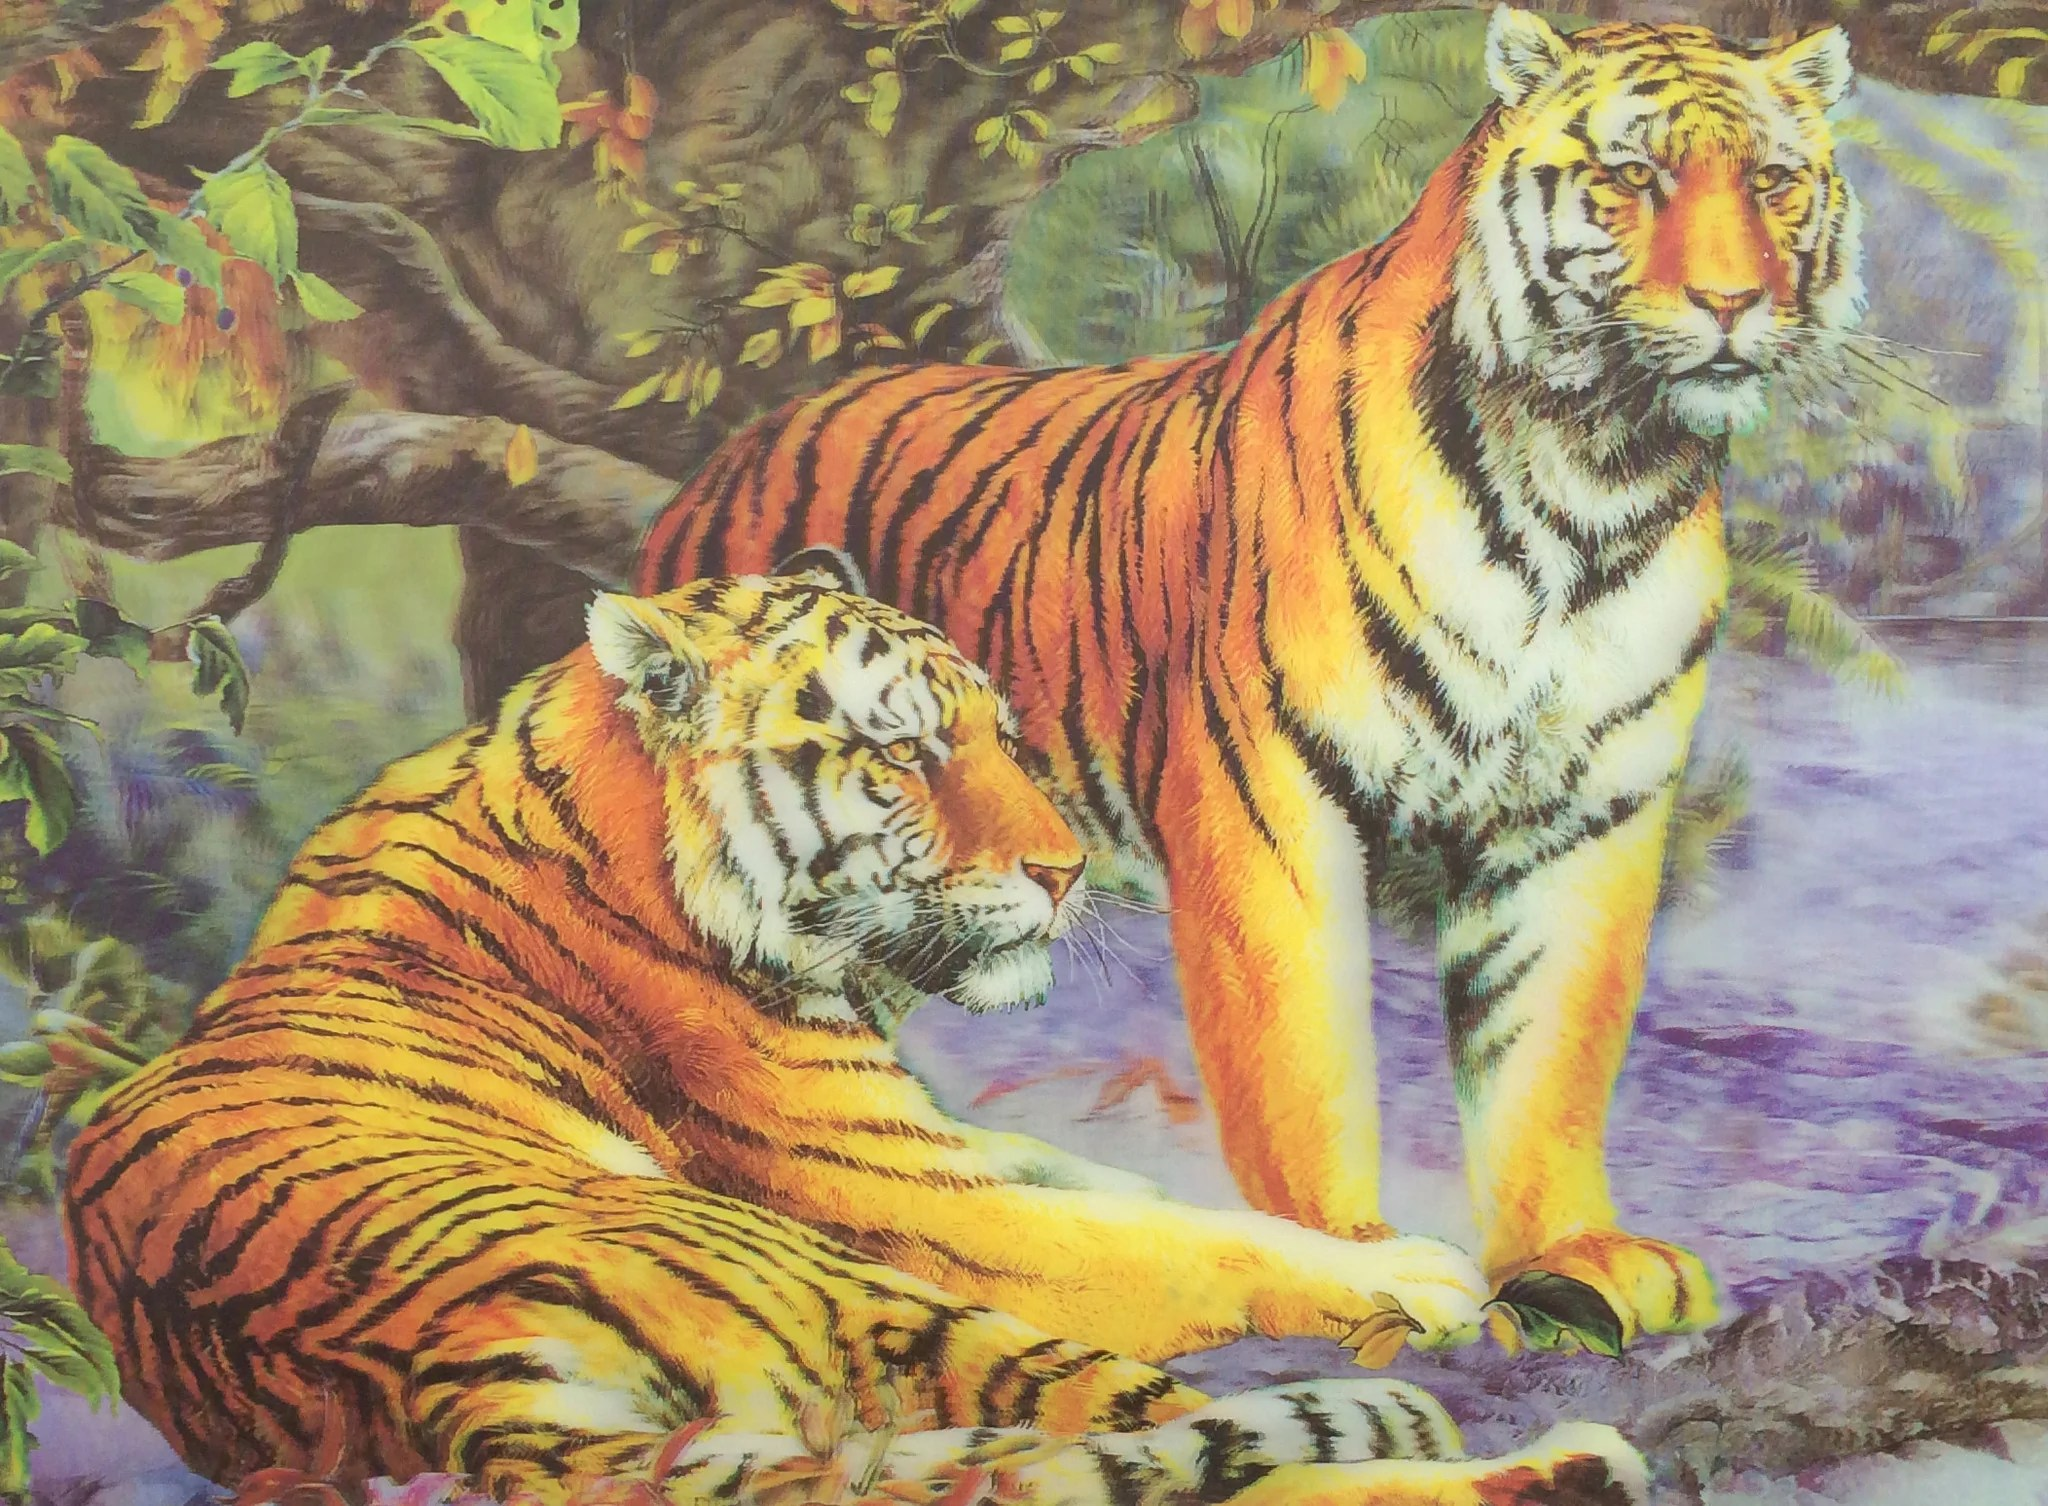 T 10 Yellow Tiger Couple 3d Picture 3dddpictures Com